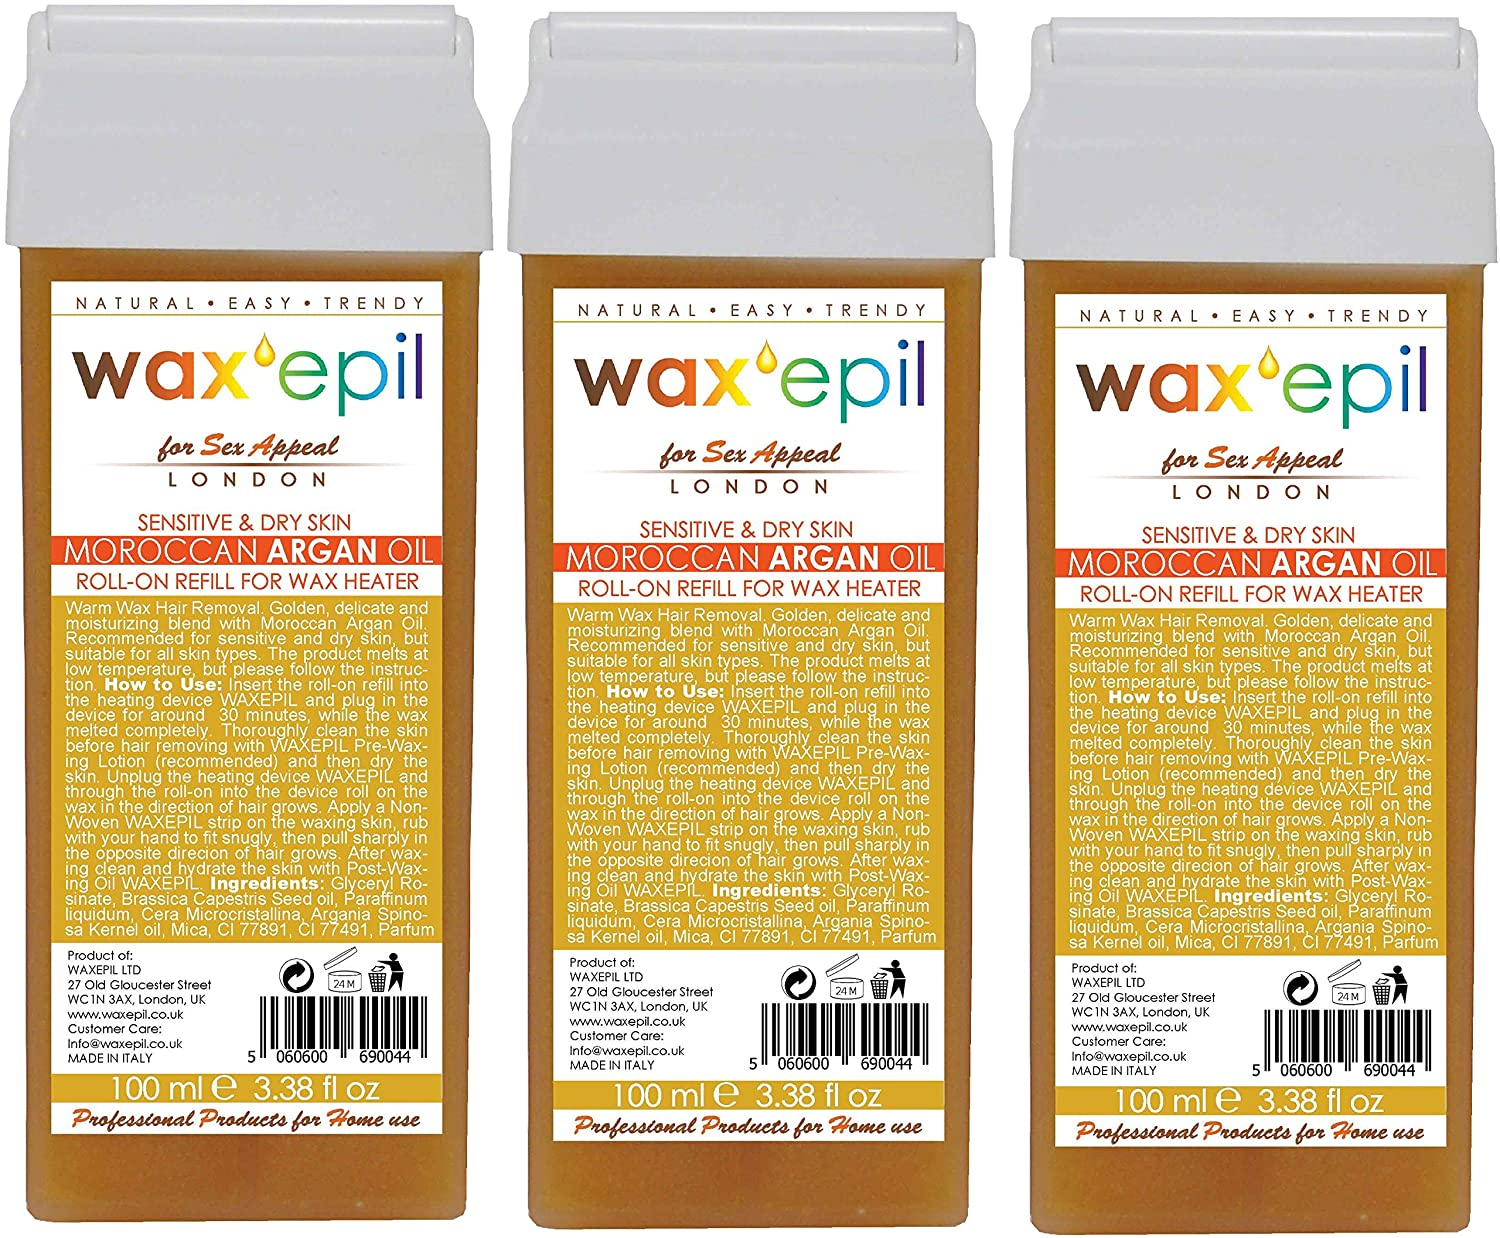 WAXEPIL *Moroccan Argan Oil* for Sensitive Skin - Professional Wax Roll-on Refill/Roller Cartridge Hair Removal - Pack of 3x100ml (Each £2.66)